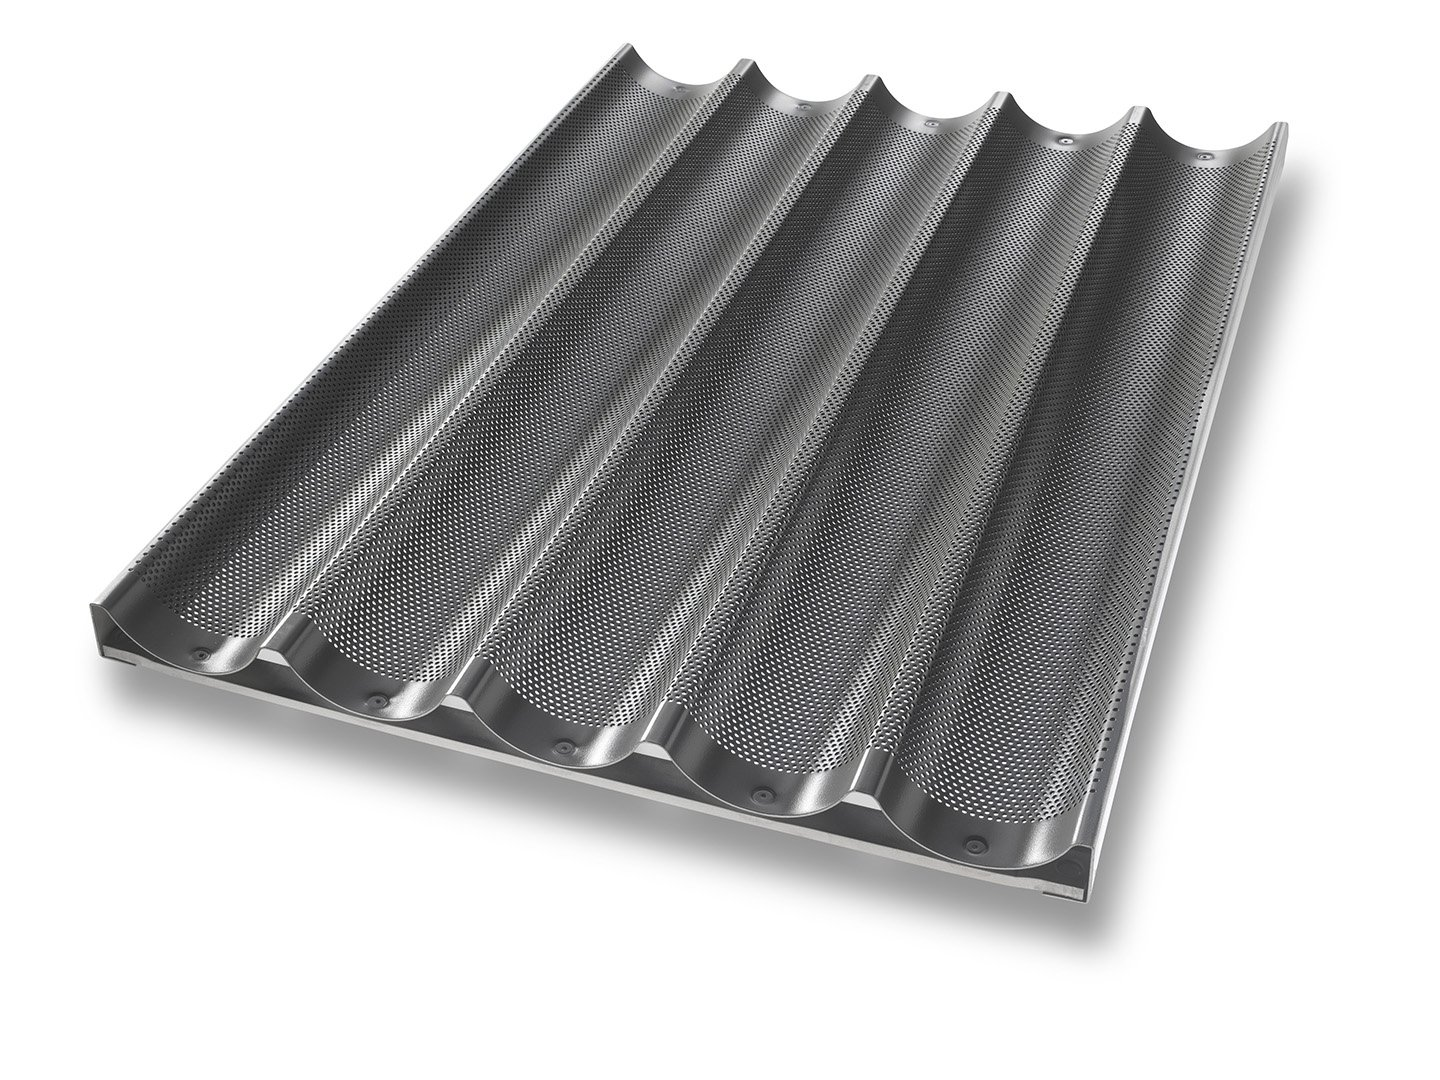 5 Channel Baguette Tray - DuraShield® Coating